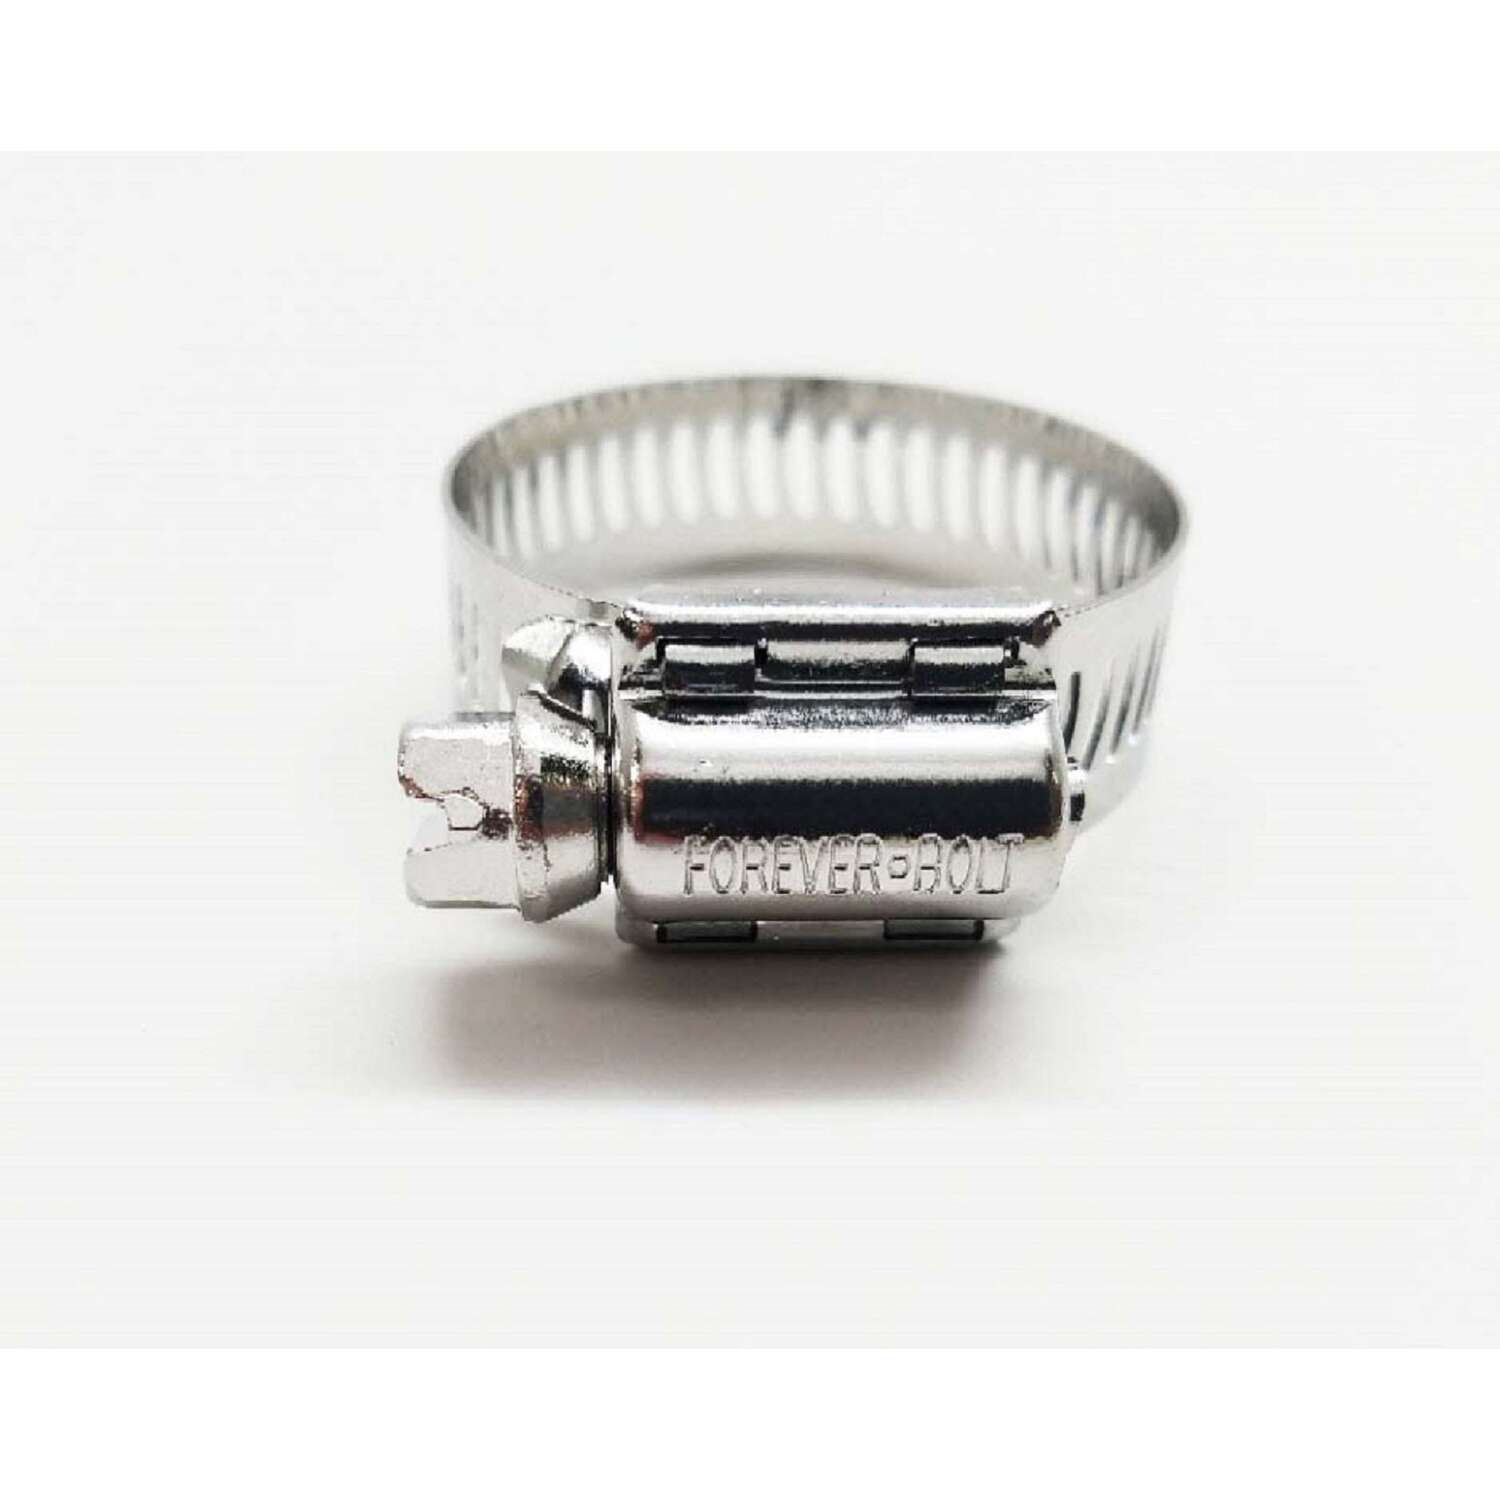 FOREVERBOLT  13/6 in. to 1-3/4 in. SAE 20  Silver  Hose Clamp  Stainless Steel  Band